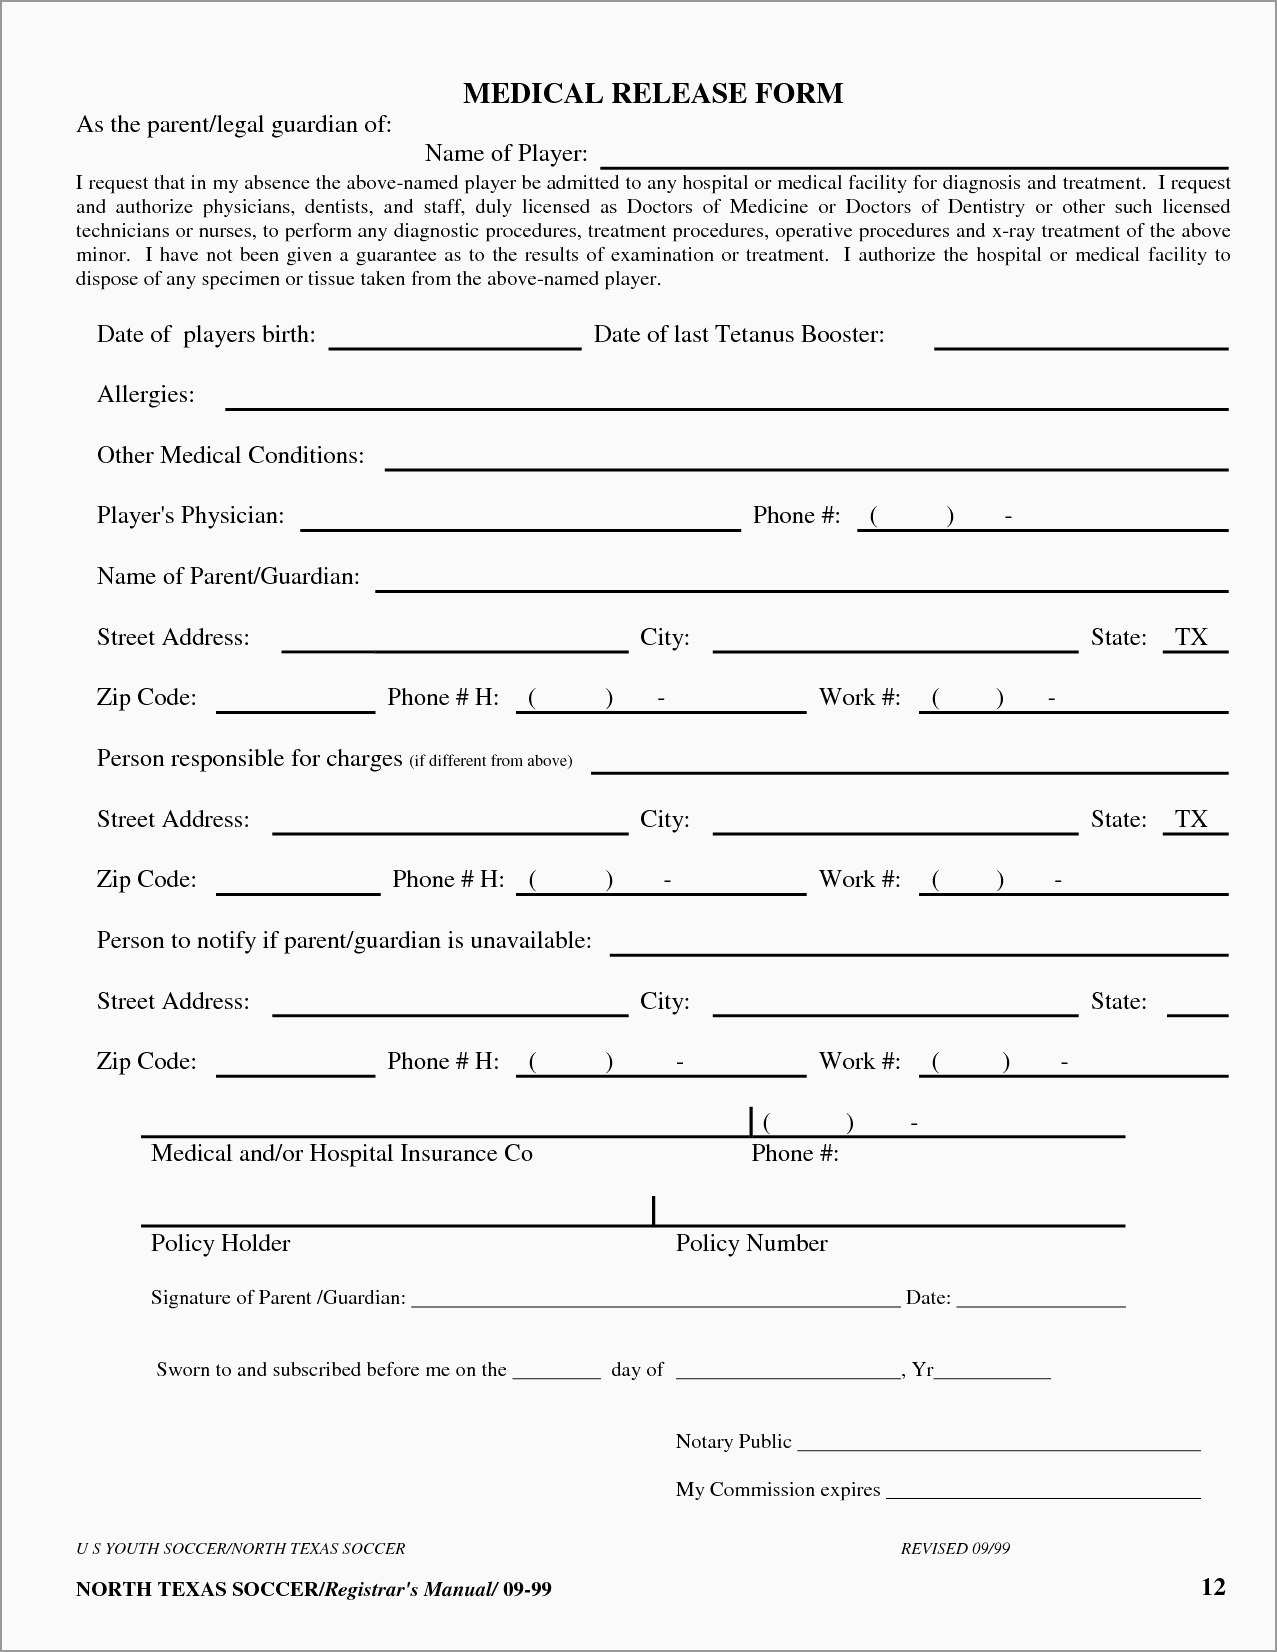 Lovely Free Medical Discharge Forms Templates | Best Of Template - Free Printable Medical Forms